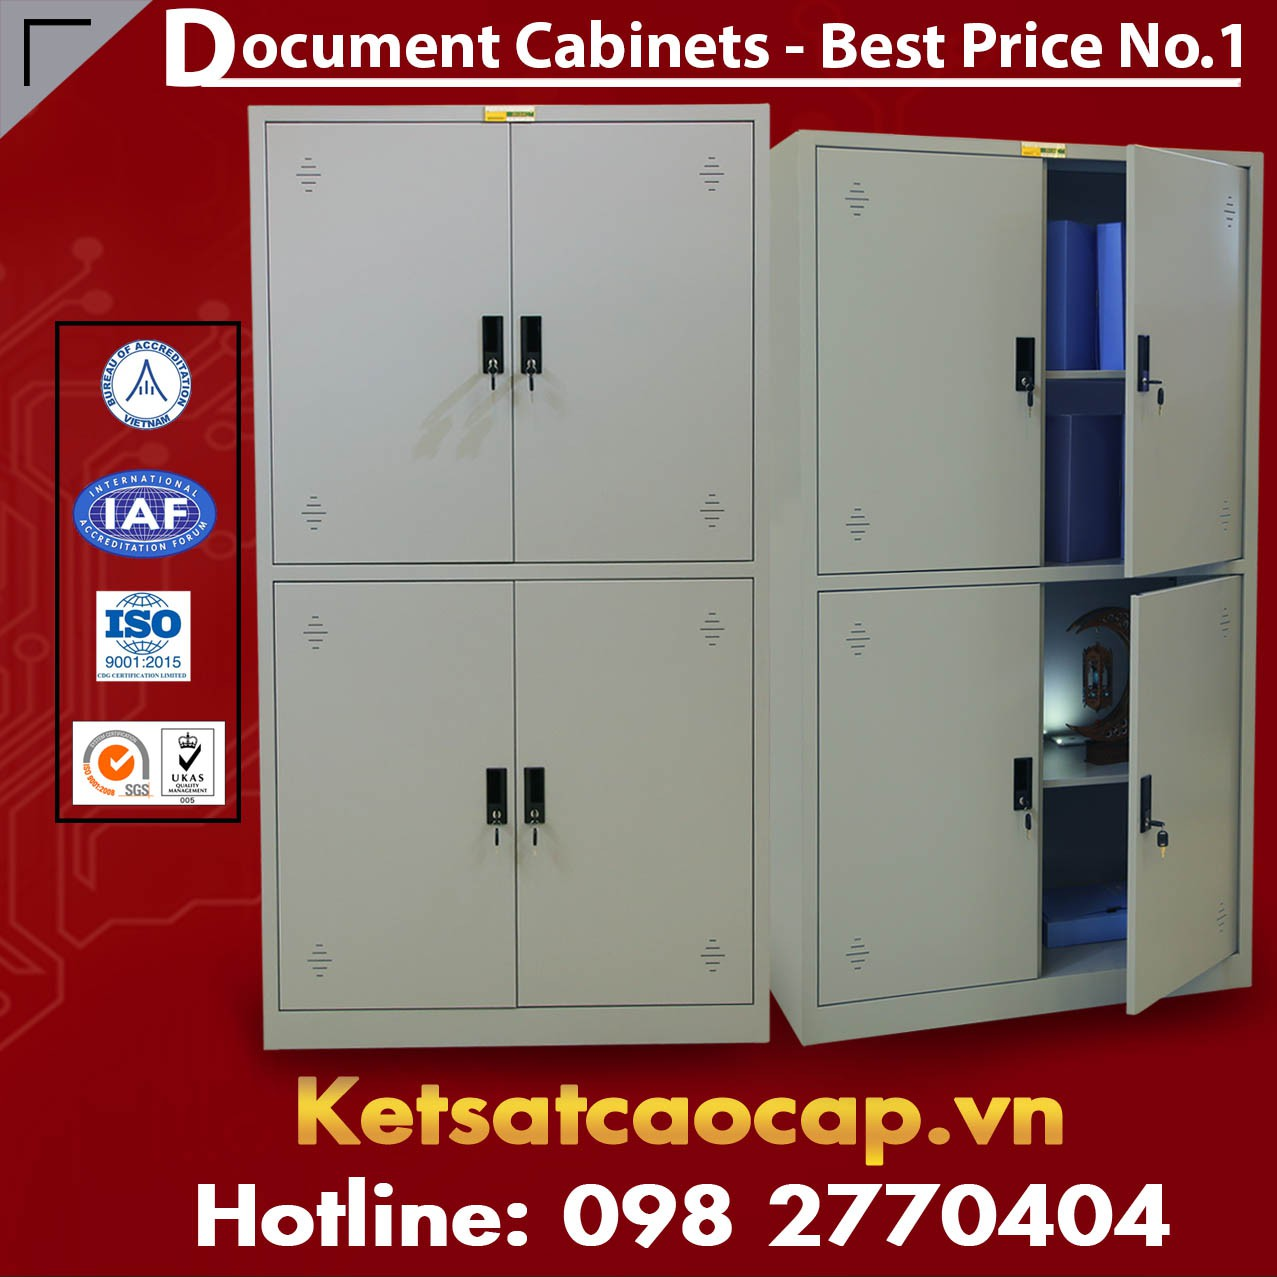 Document Cabinets